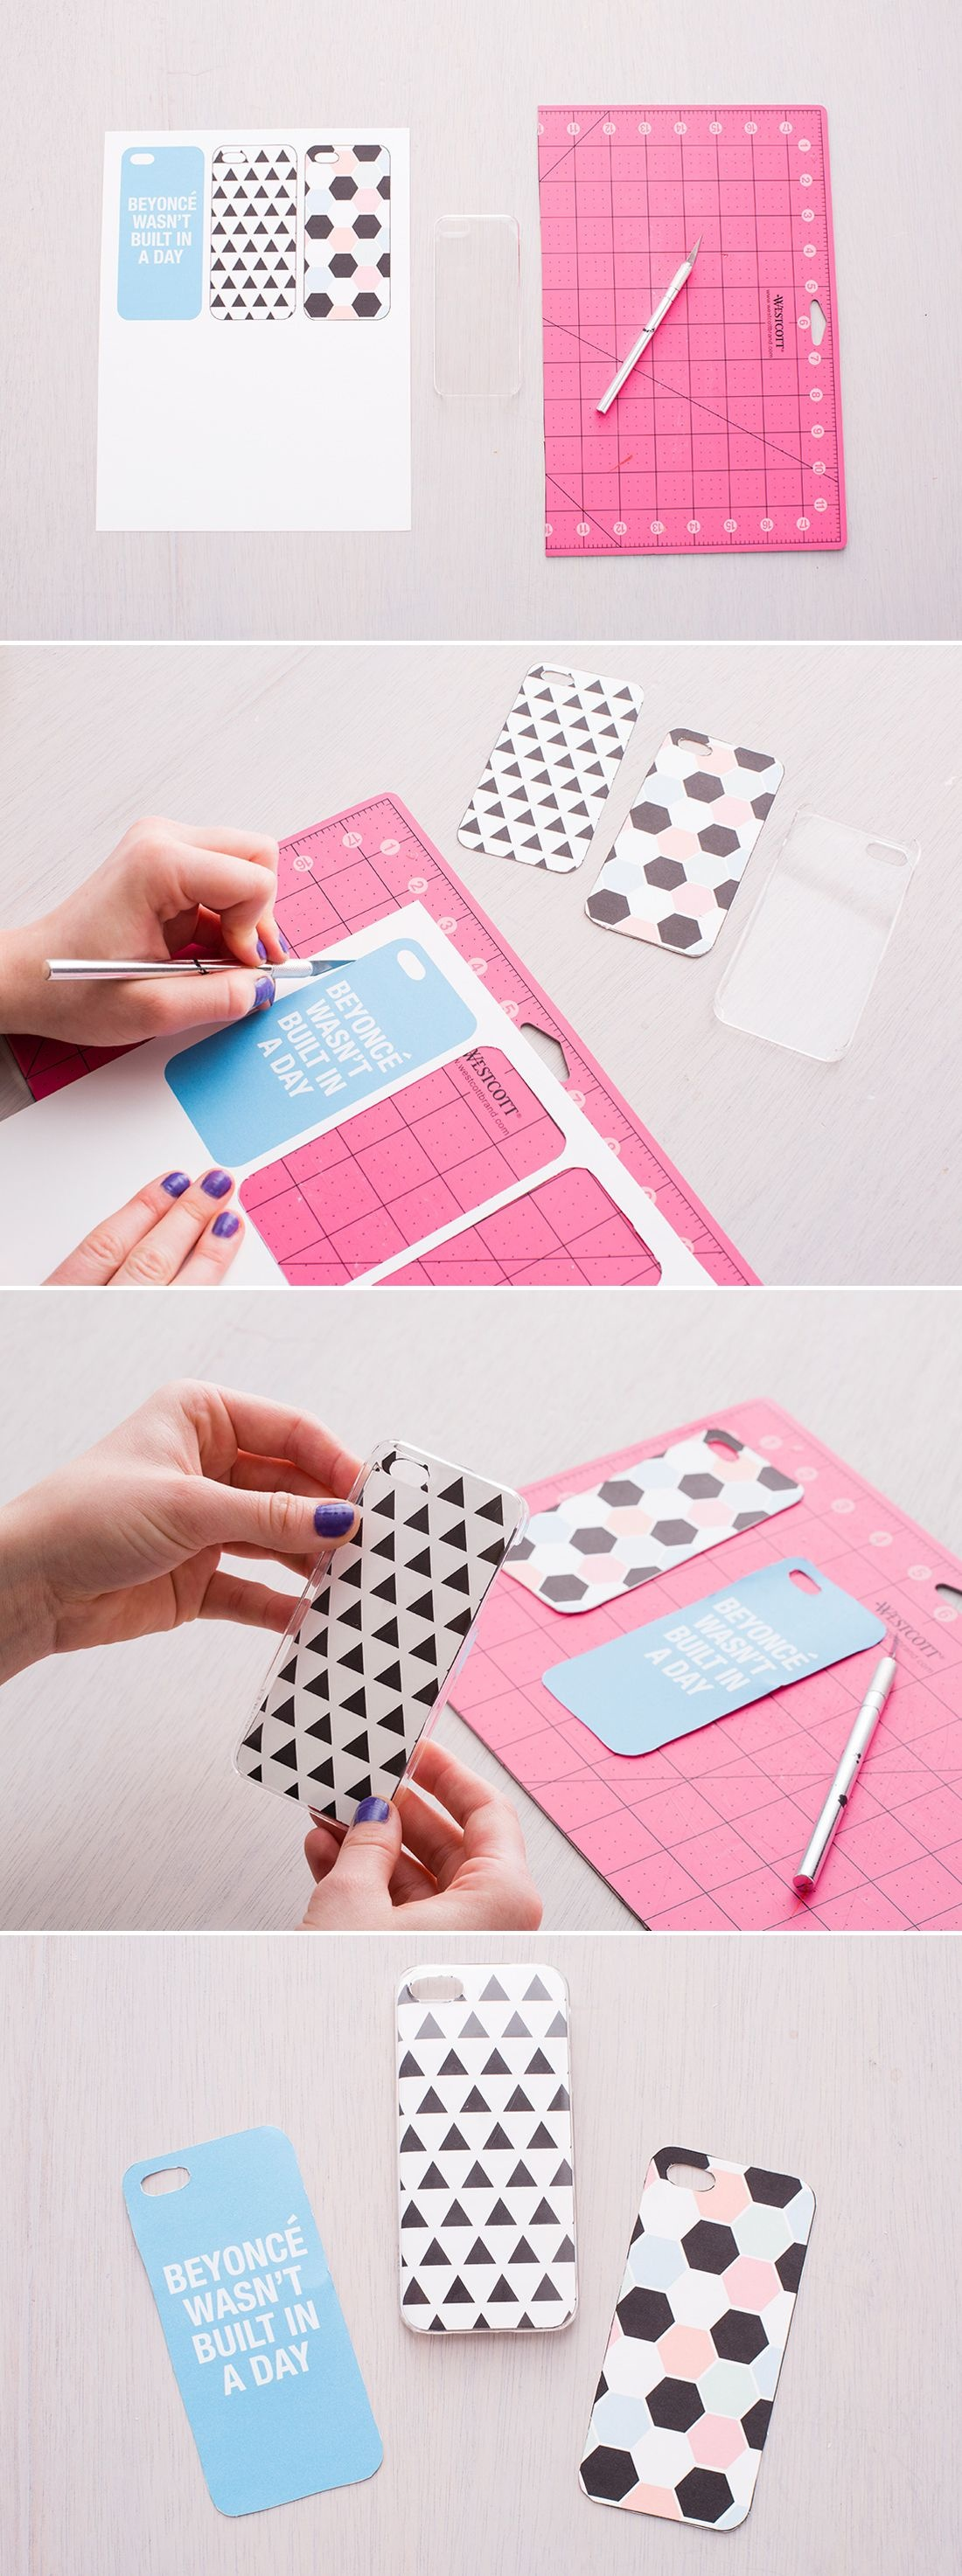 Diy A New Iphone Case With These Free Printables. | Crafts, Projects - Free Printable Iphone Skins